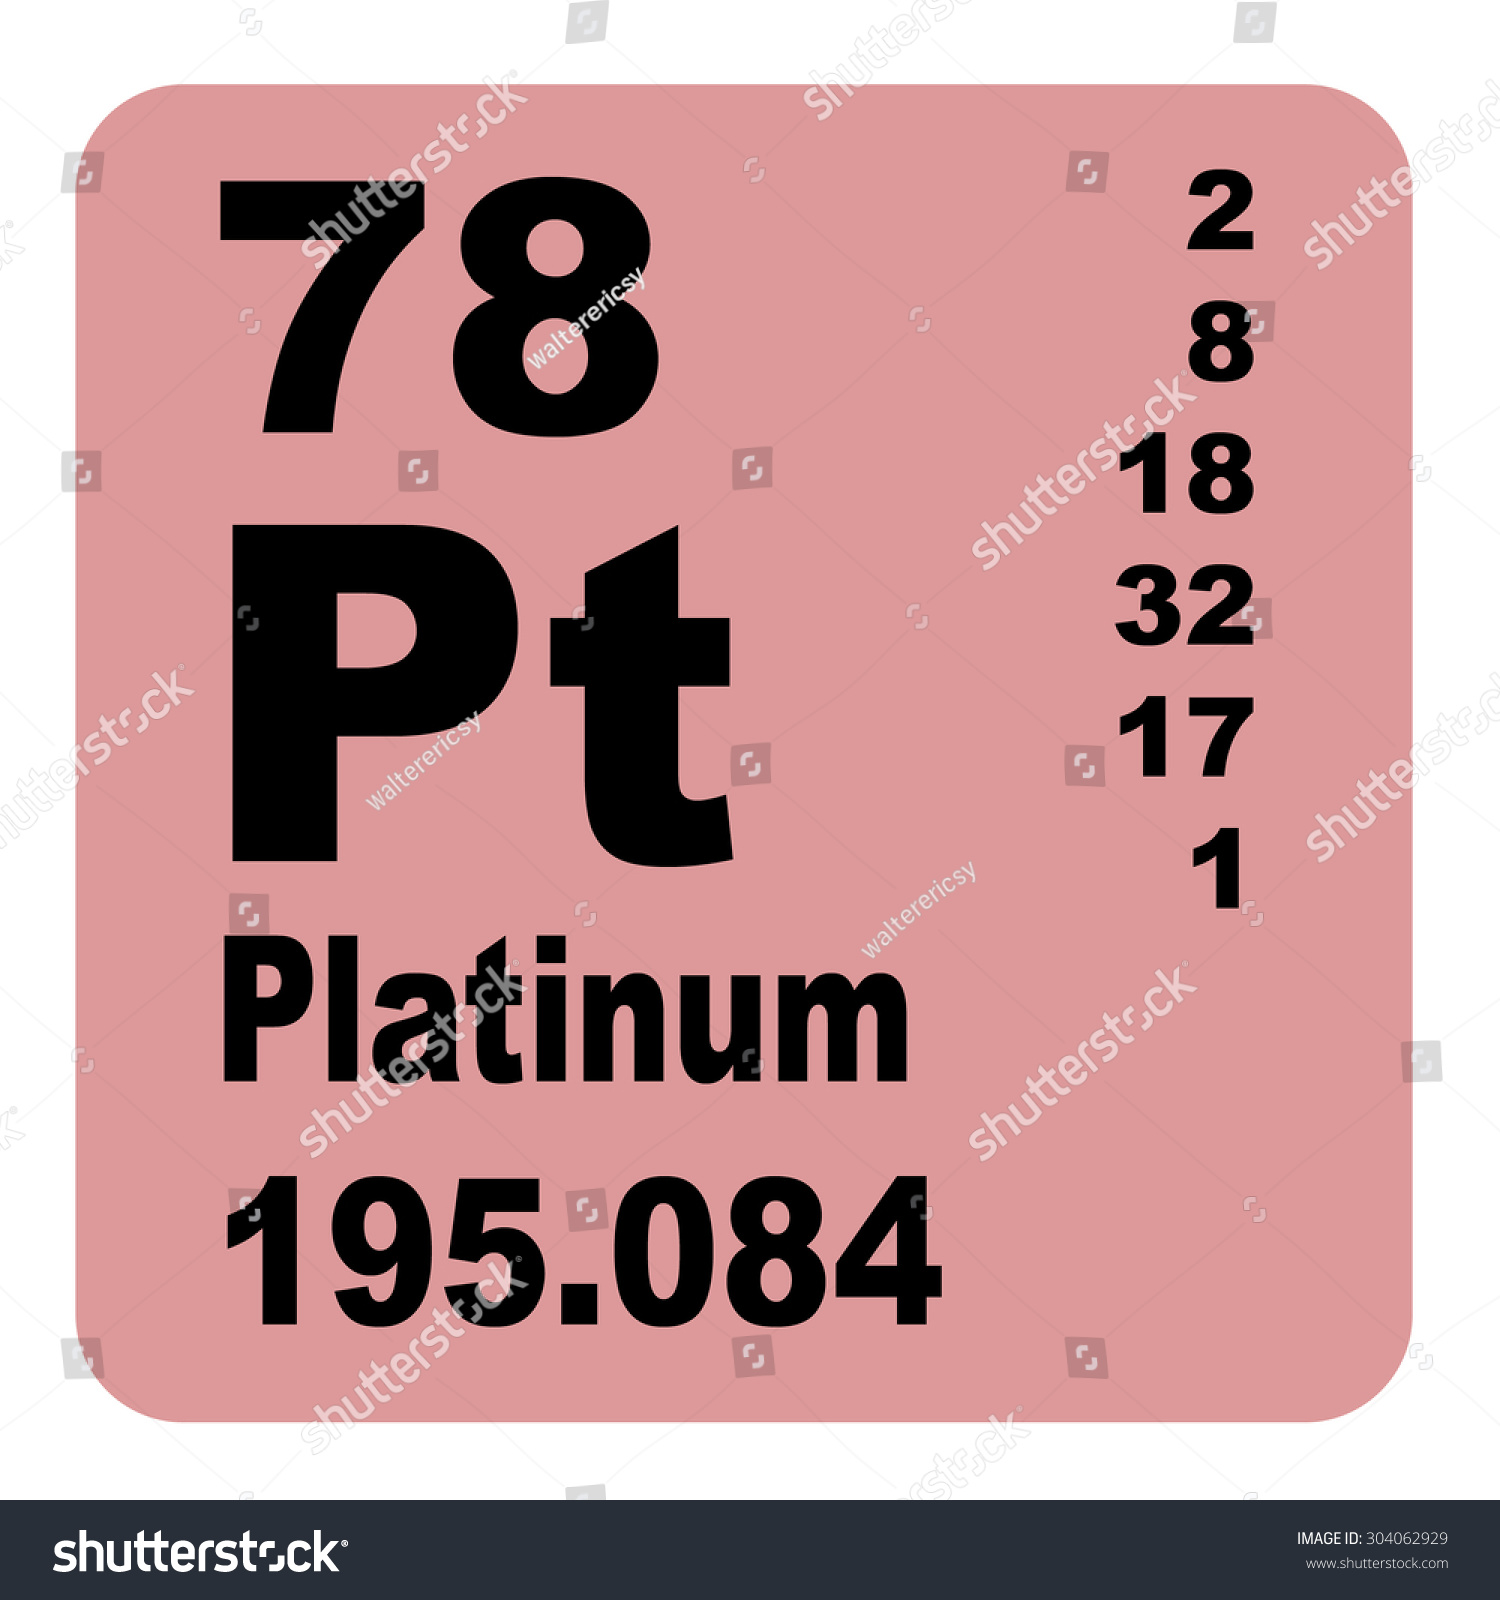 Platinum periodic table facts gallery periodic table images platinum periodic table facts images periodic table images platinum periodic table facts choice image periodic table gamestrikefo Gallery